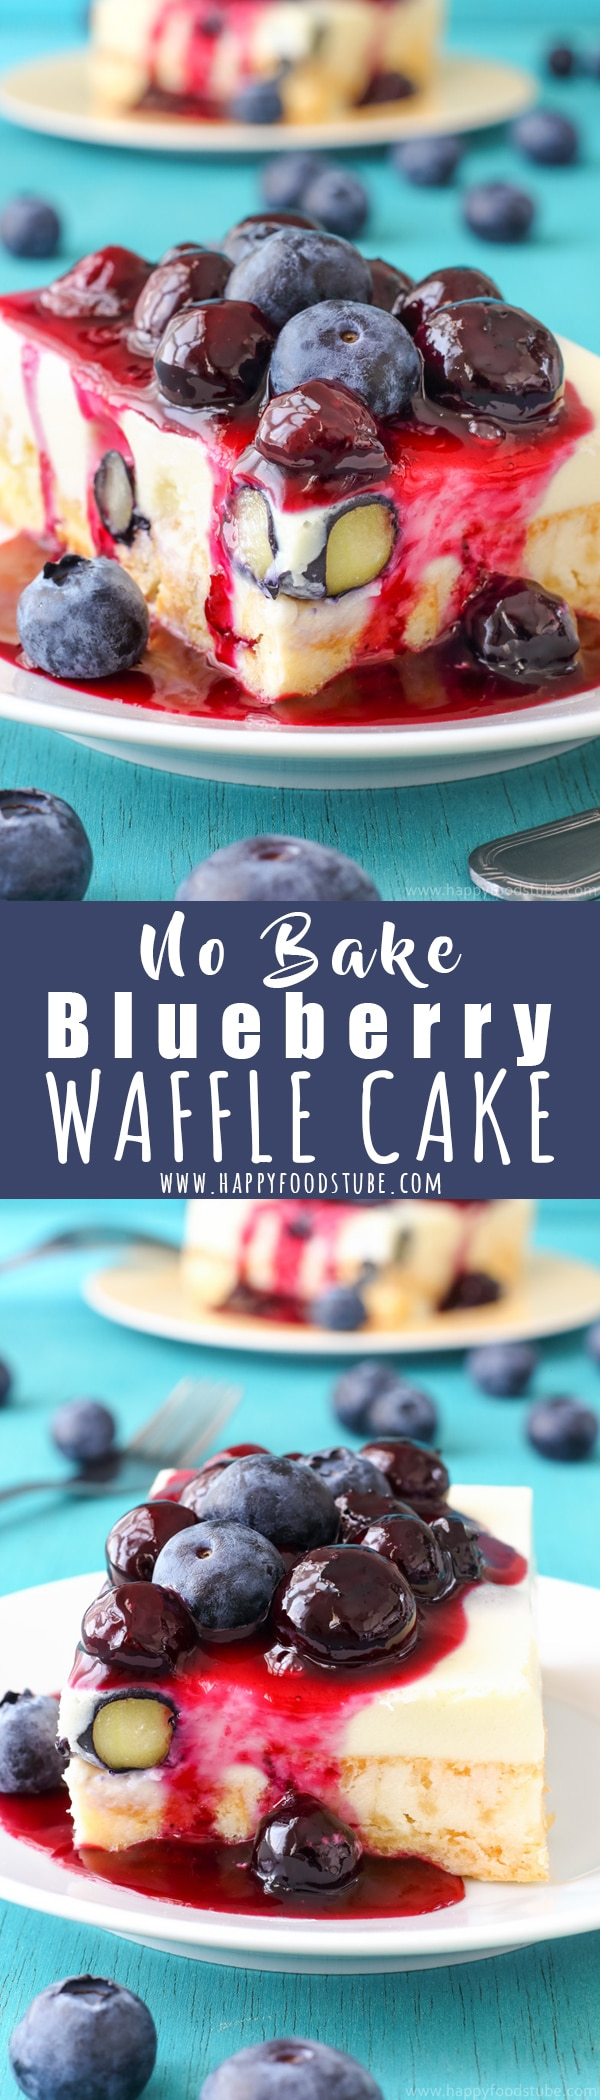 This White Chocolate Waffle Cake with Blueberries is our family favorite no bake dessert. Perfect homemade dessert recipe to satisfy your sweet tooth. Easy desserts to make at home without oven